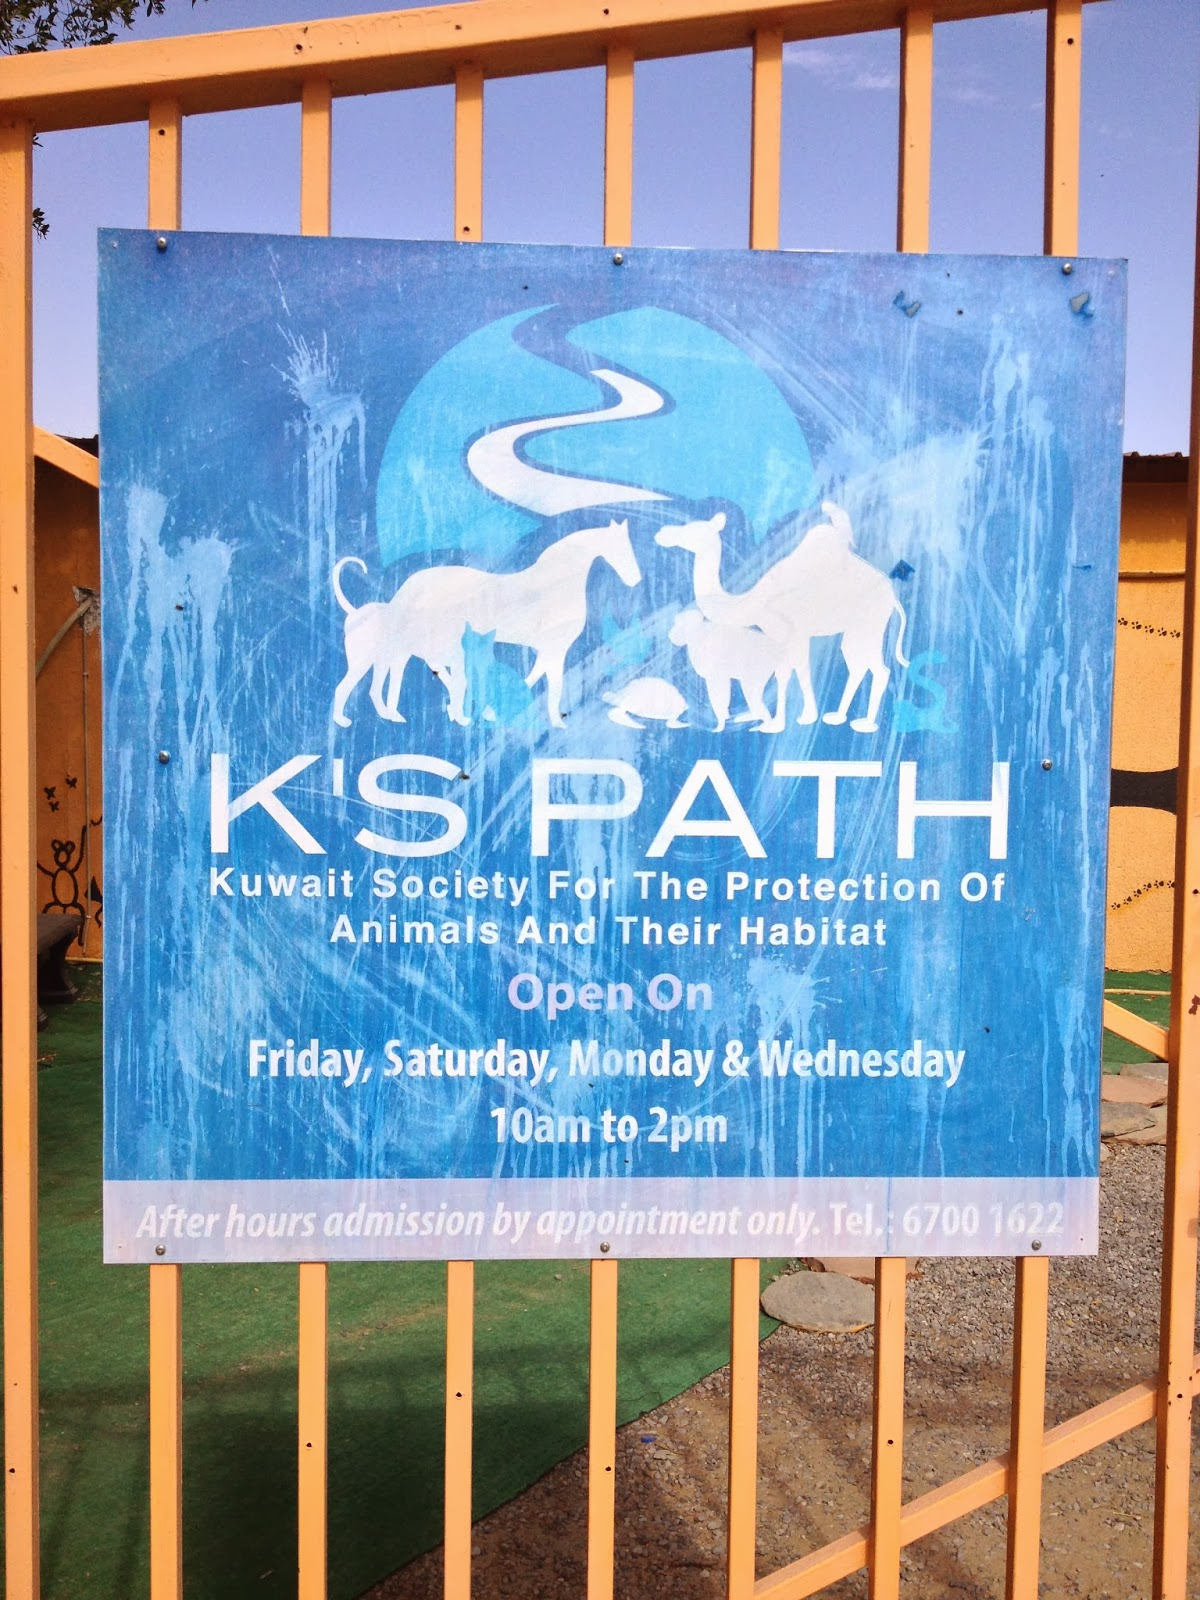 The Kuwait Society For The Protection Of Animals And Their Habitat (aka K's  Path) Houses Its Animals There